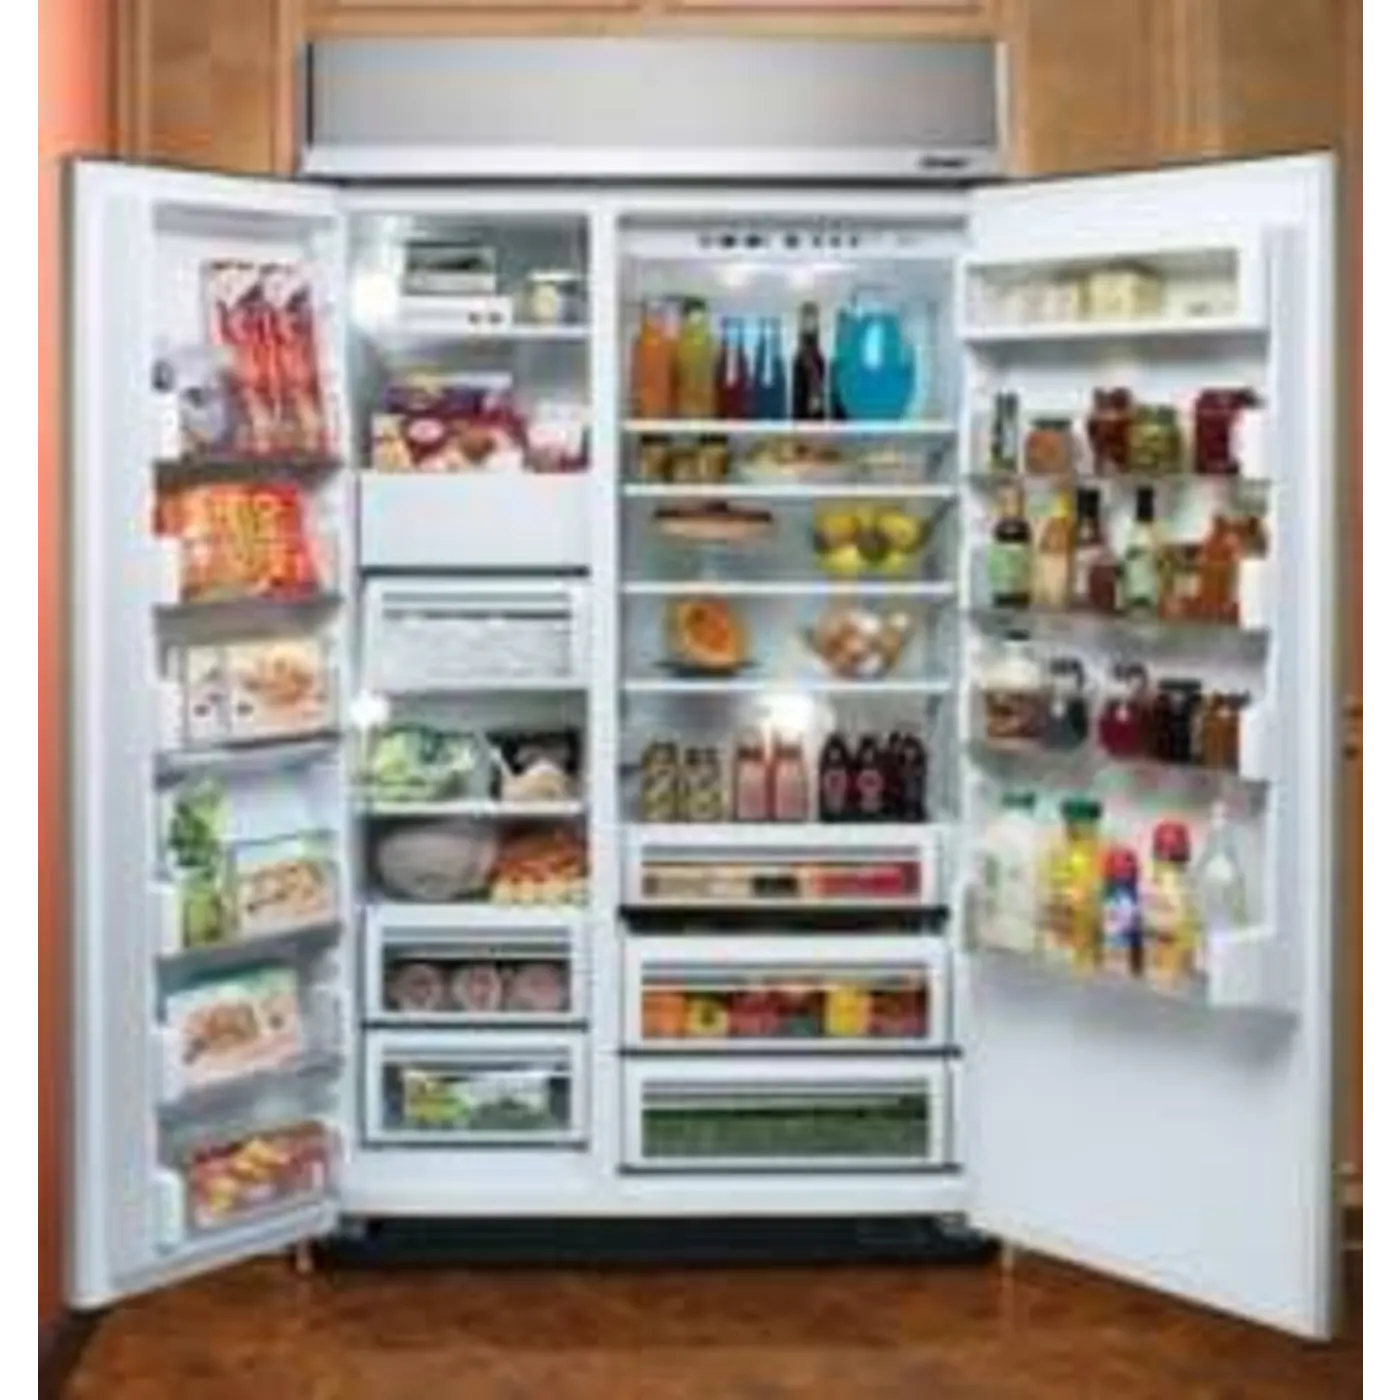 Kuche Bar Fridge Review Dacor Ef48dbss Discovery 48 Quot 29 7 Cu Ft Stainless Steel